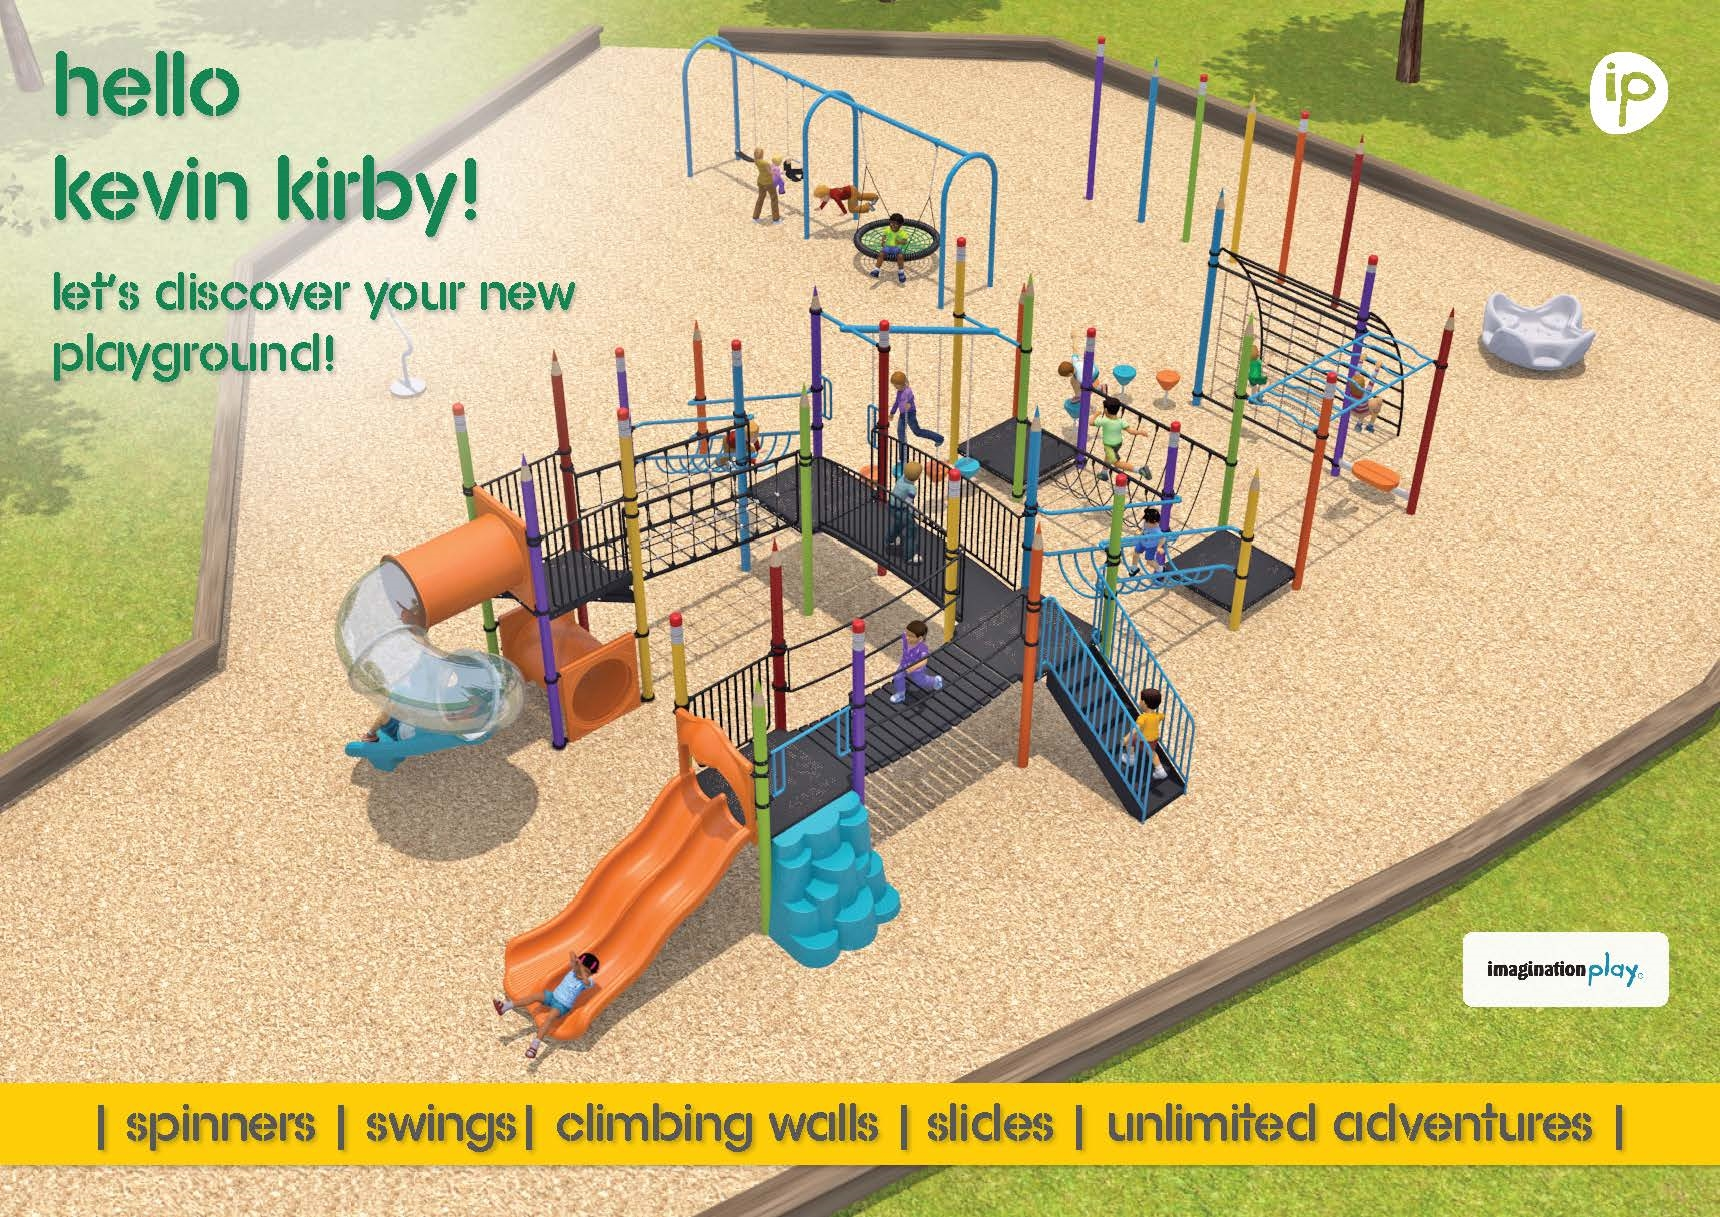 Kevin Kirby Reserve - proposed playground design